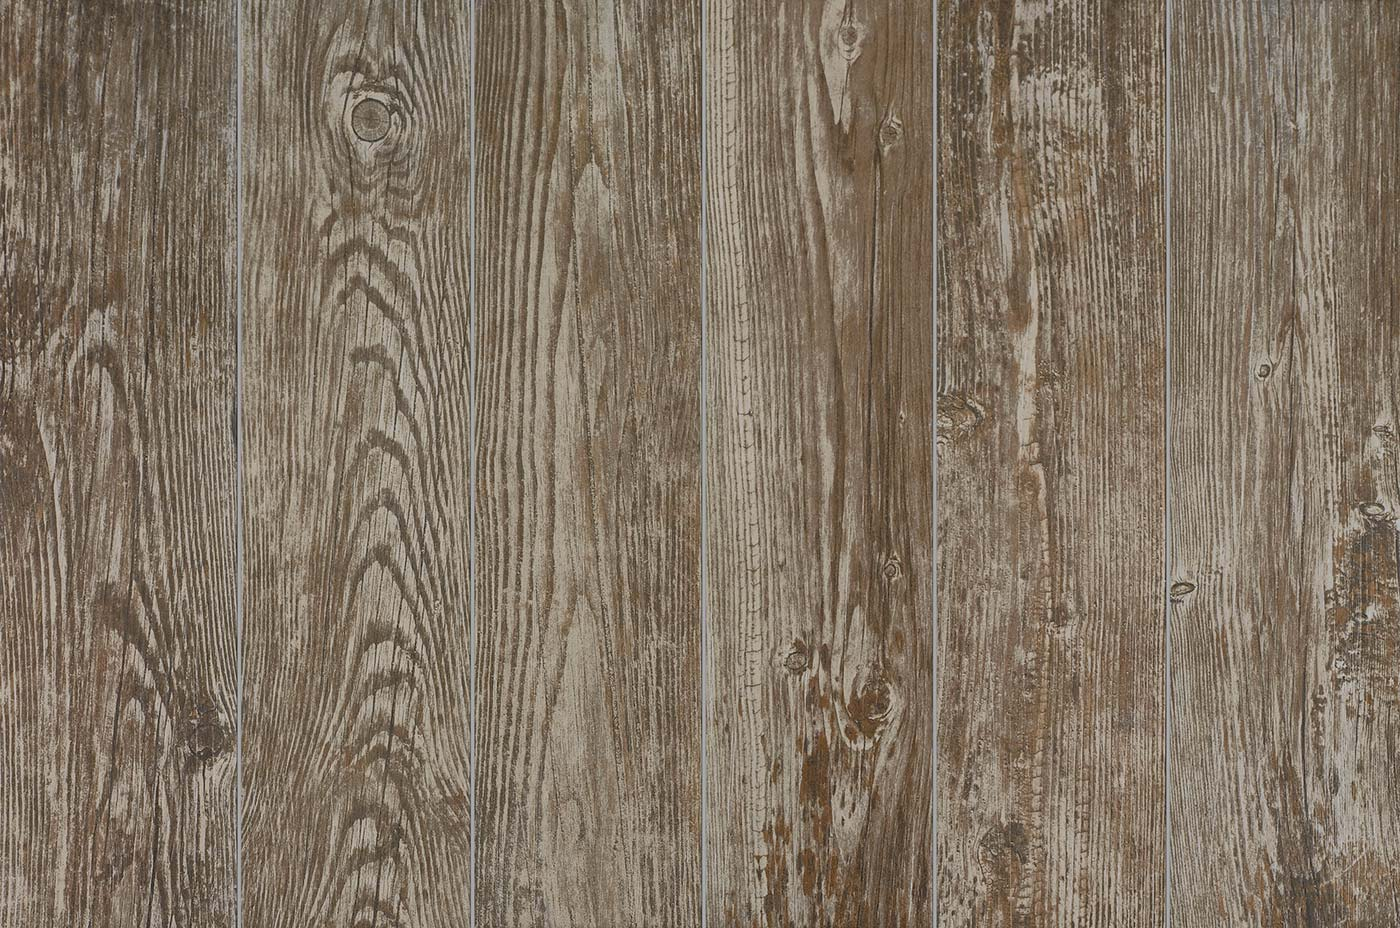 Florim Usa Forest Rain Grip Finish 6 Quot X 24 Quot Porcelain Tile